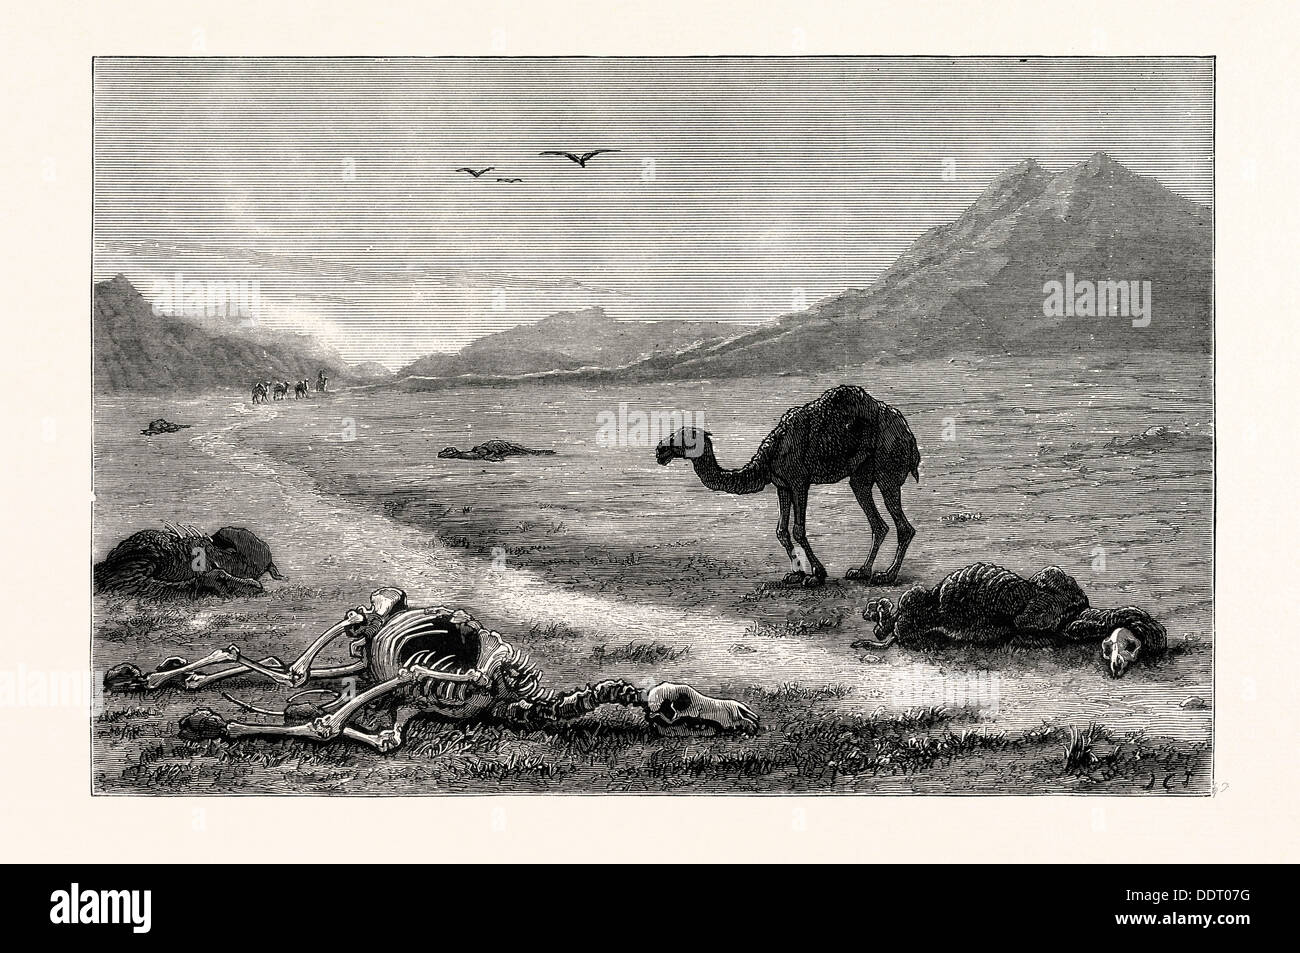 A CAMEL LEFT TO DIE, AN INCIDENT IN THE AFGHAN WAR, AFGHANISTAN - Stock Image